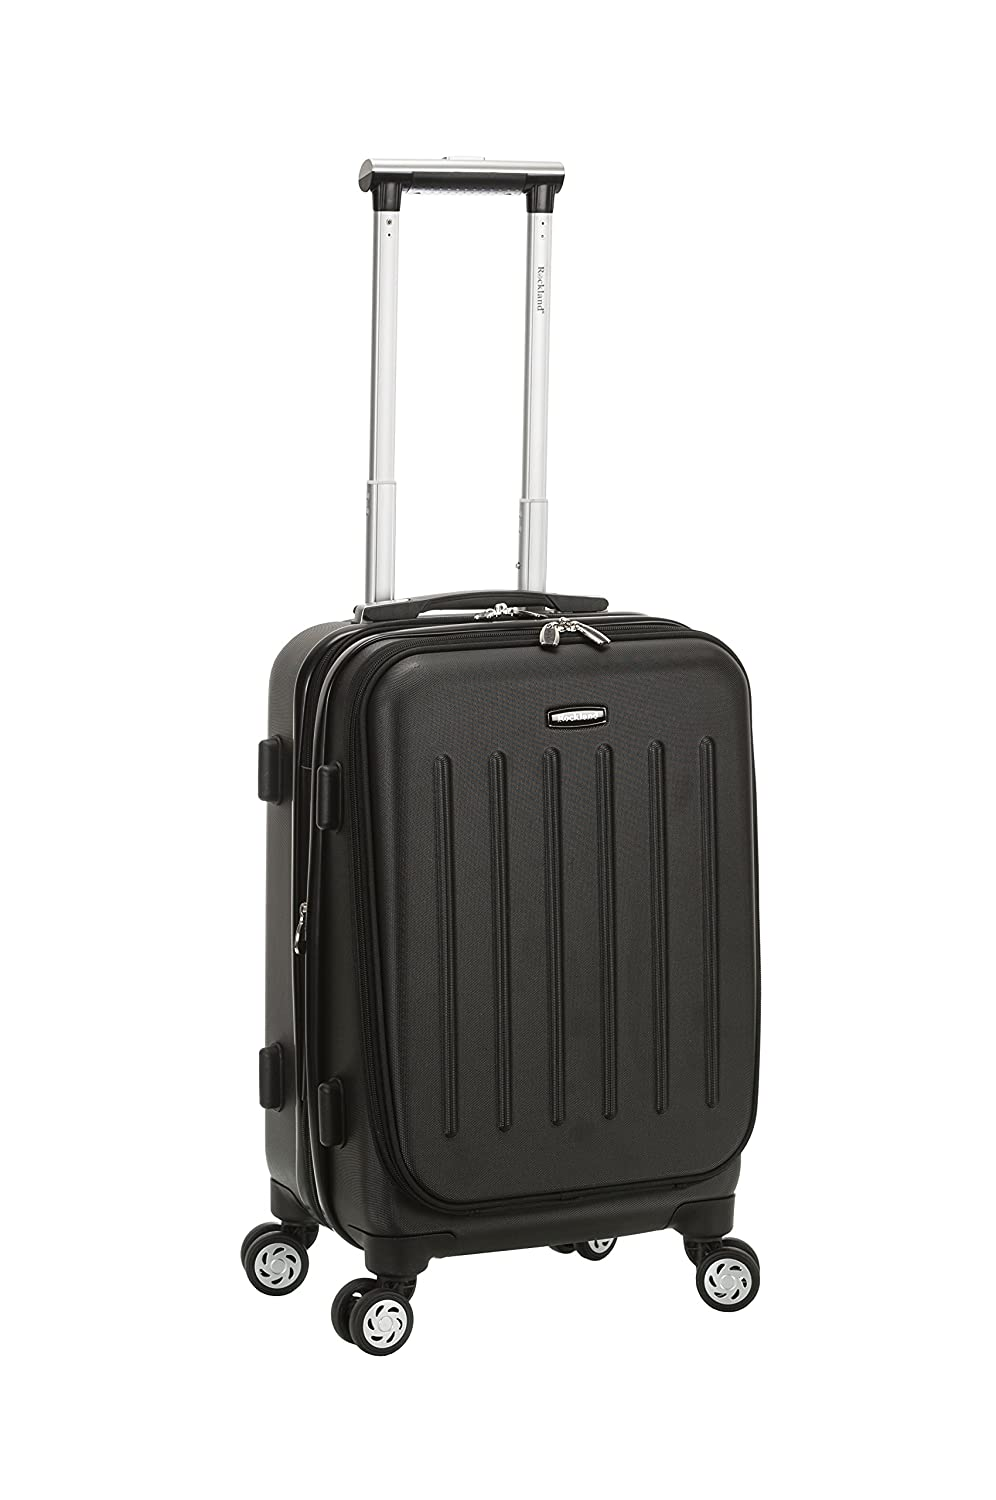 Rockland titan 19-inch hard side Carry on